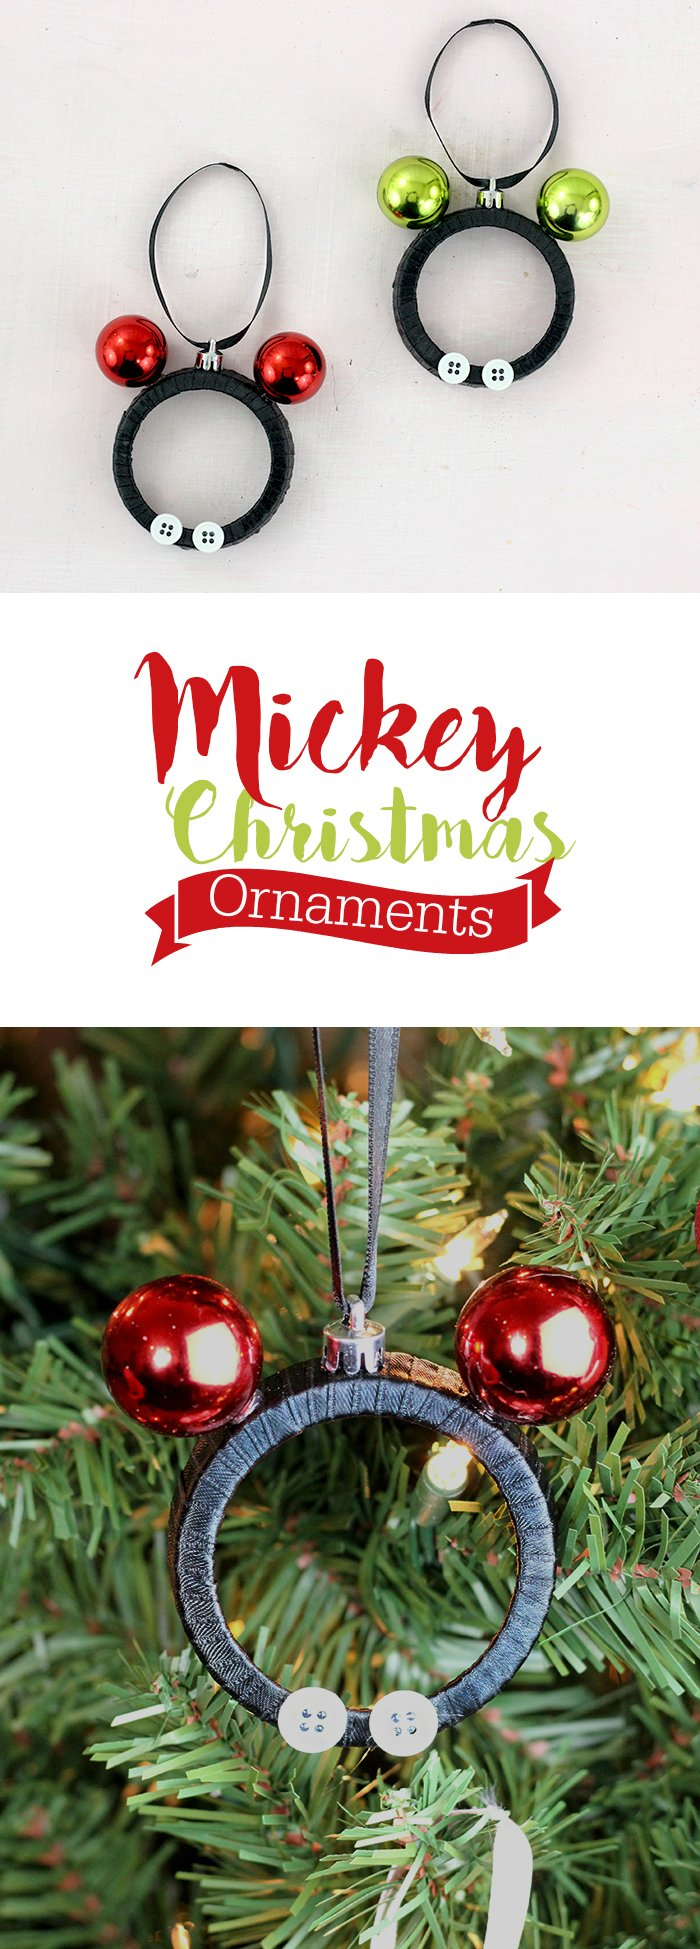 Mickey and Minnie DIY Christmas Ornaments. Make them with Mason Jar Lids. So stinking cute!